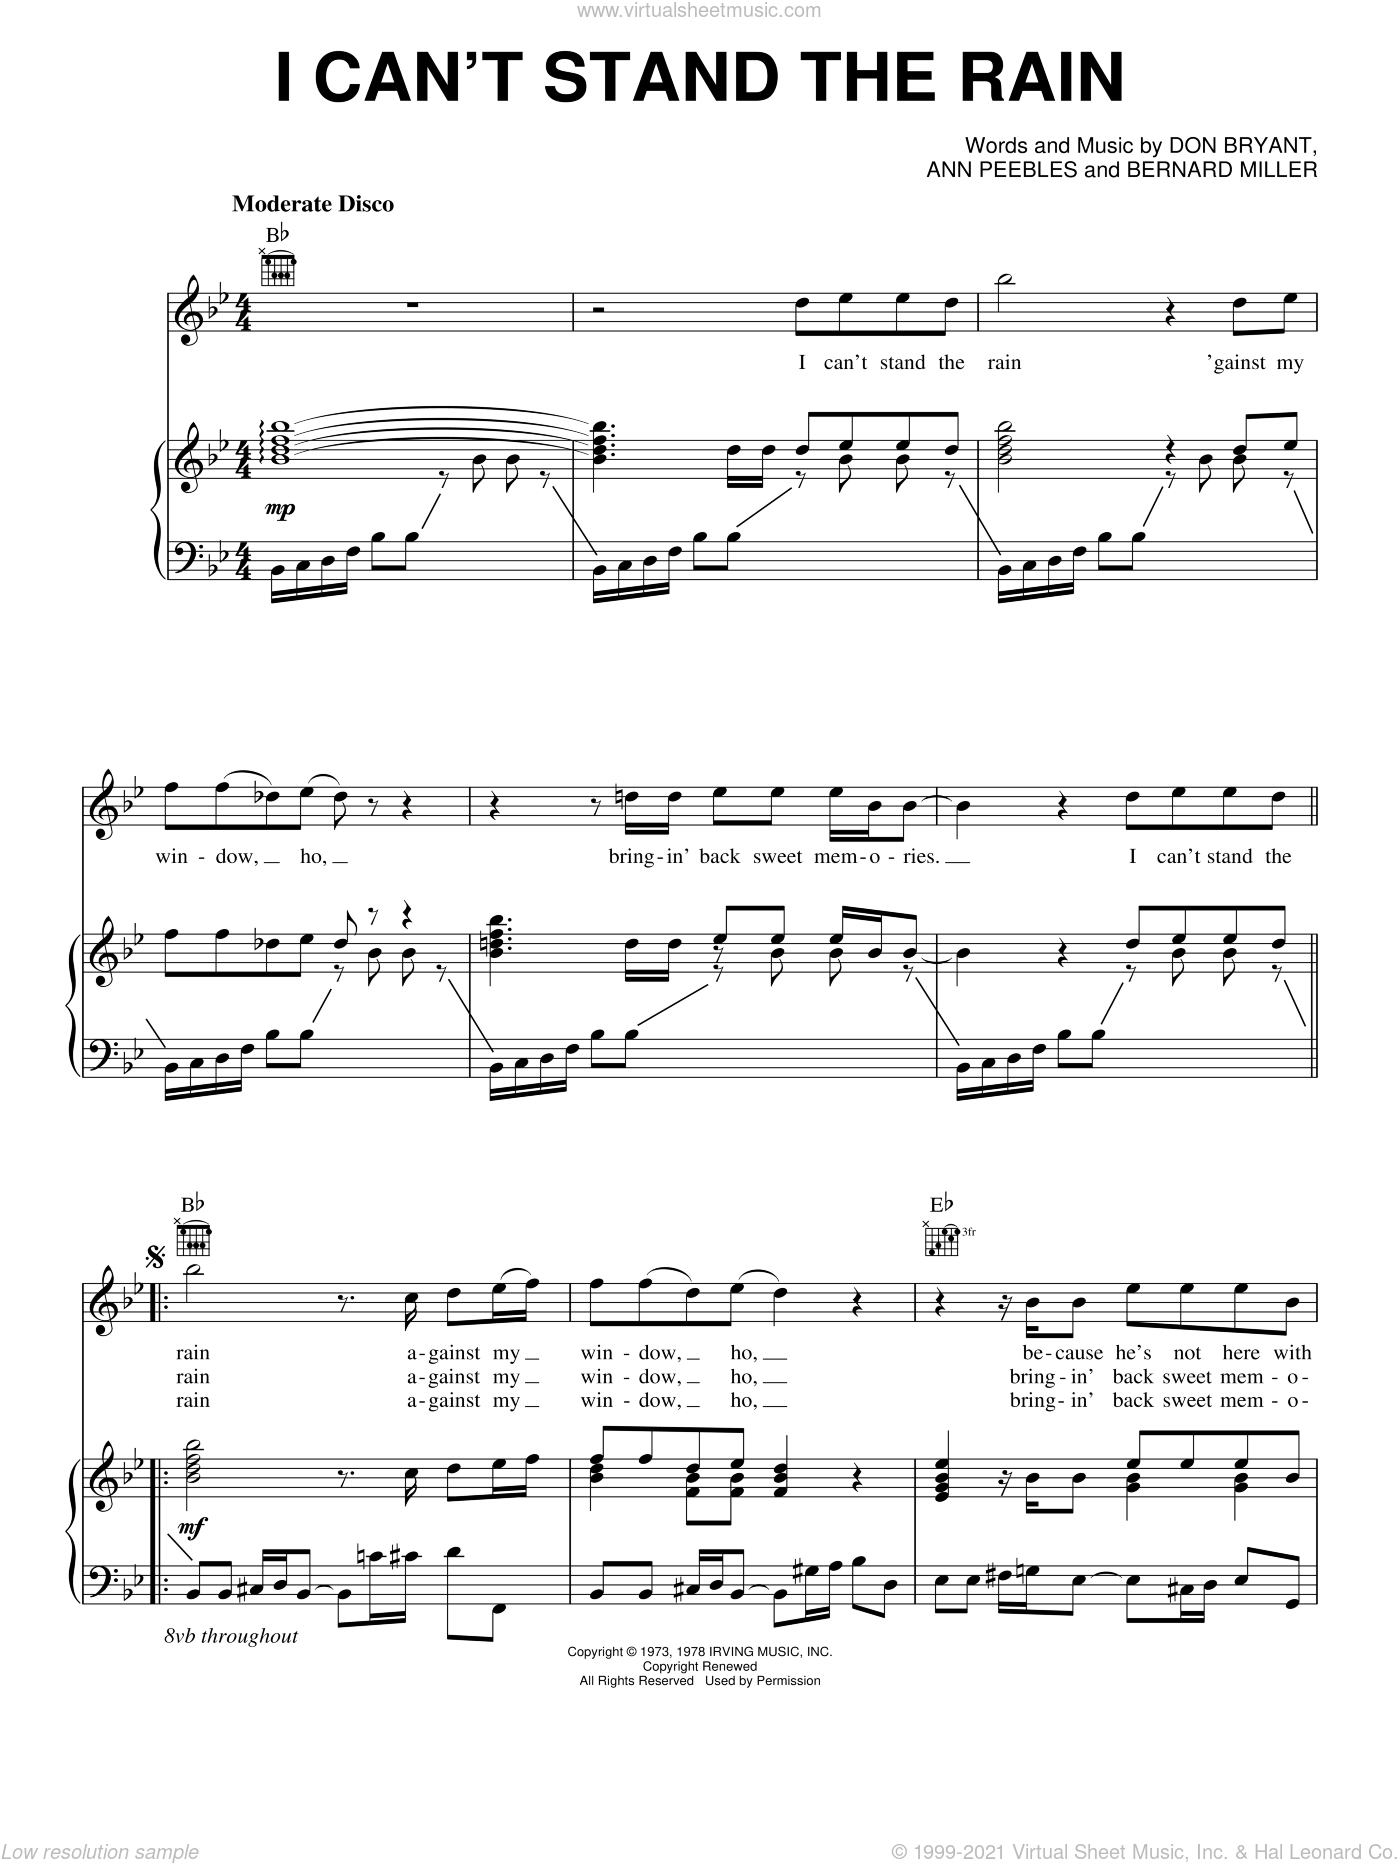 I Can't Stand The Rain sheet music for voice, piano or guitar by Don Bryant